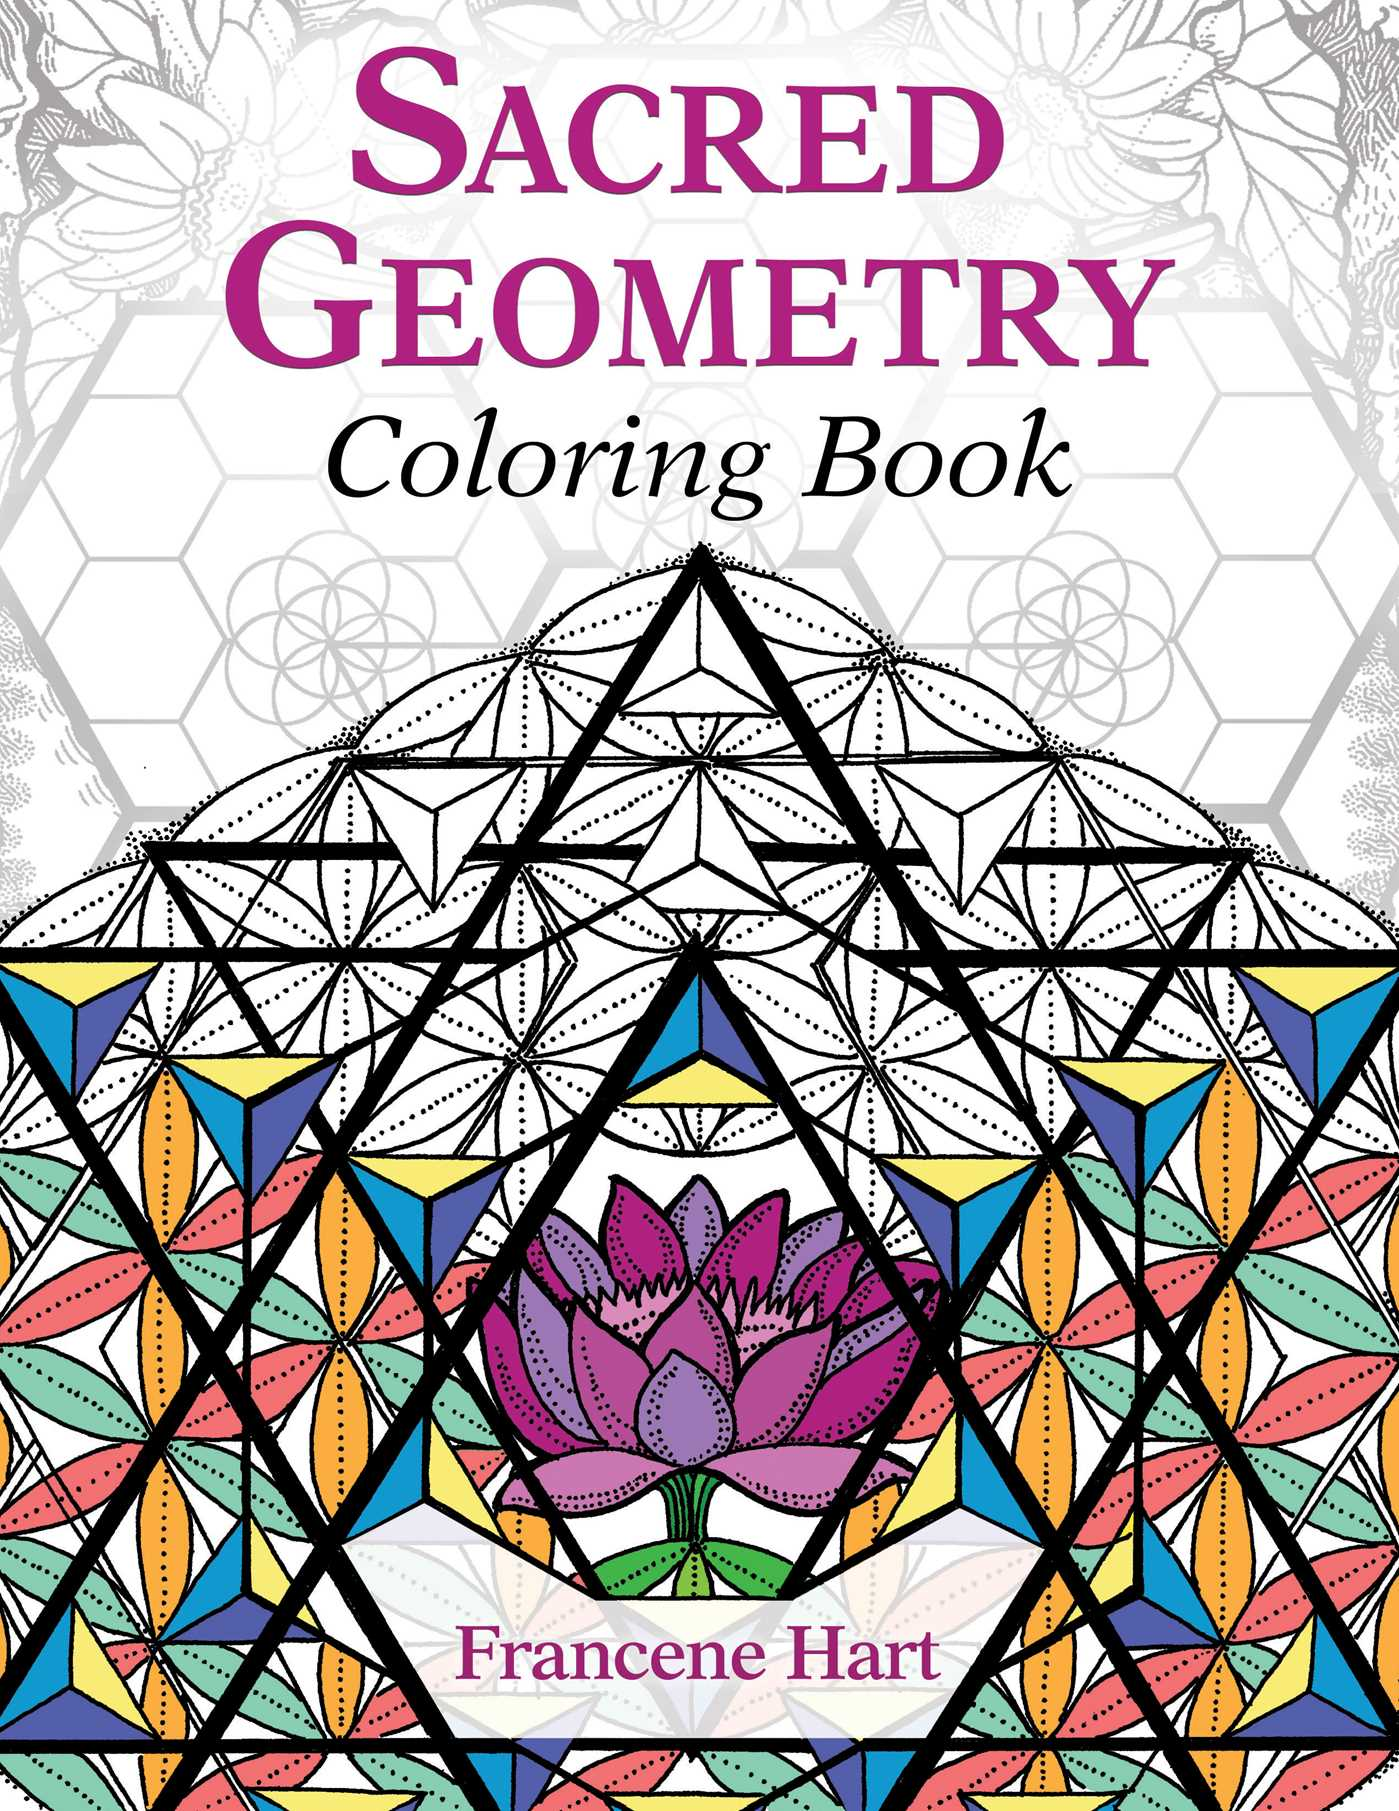 Sacred Geometry Coloring Book | Book by Francene Hart